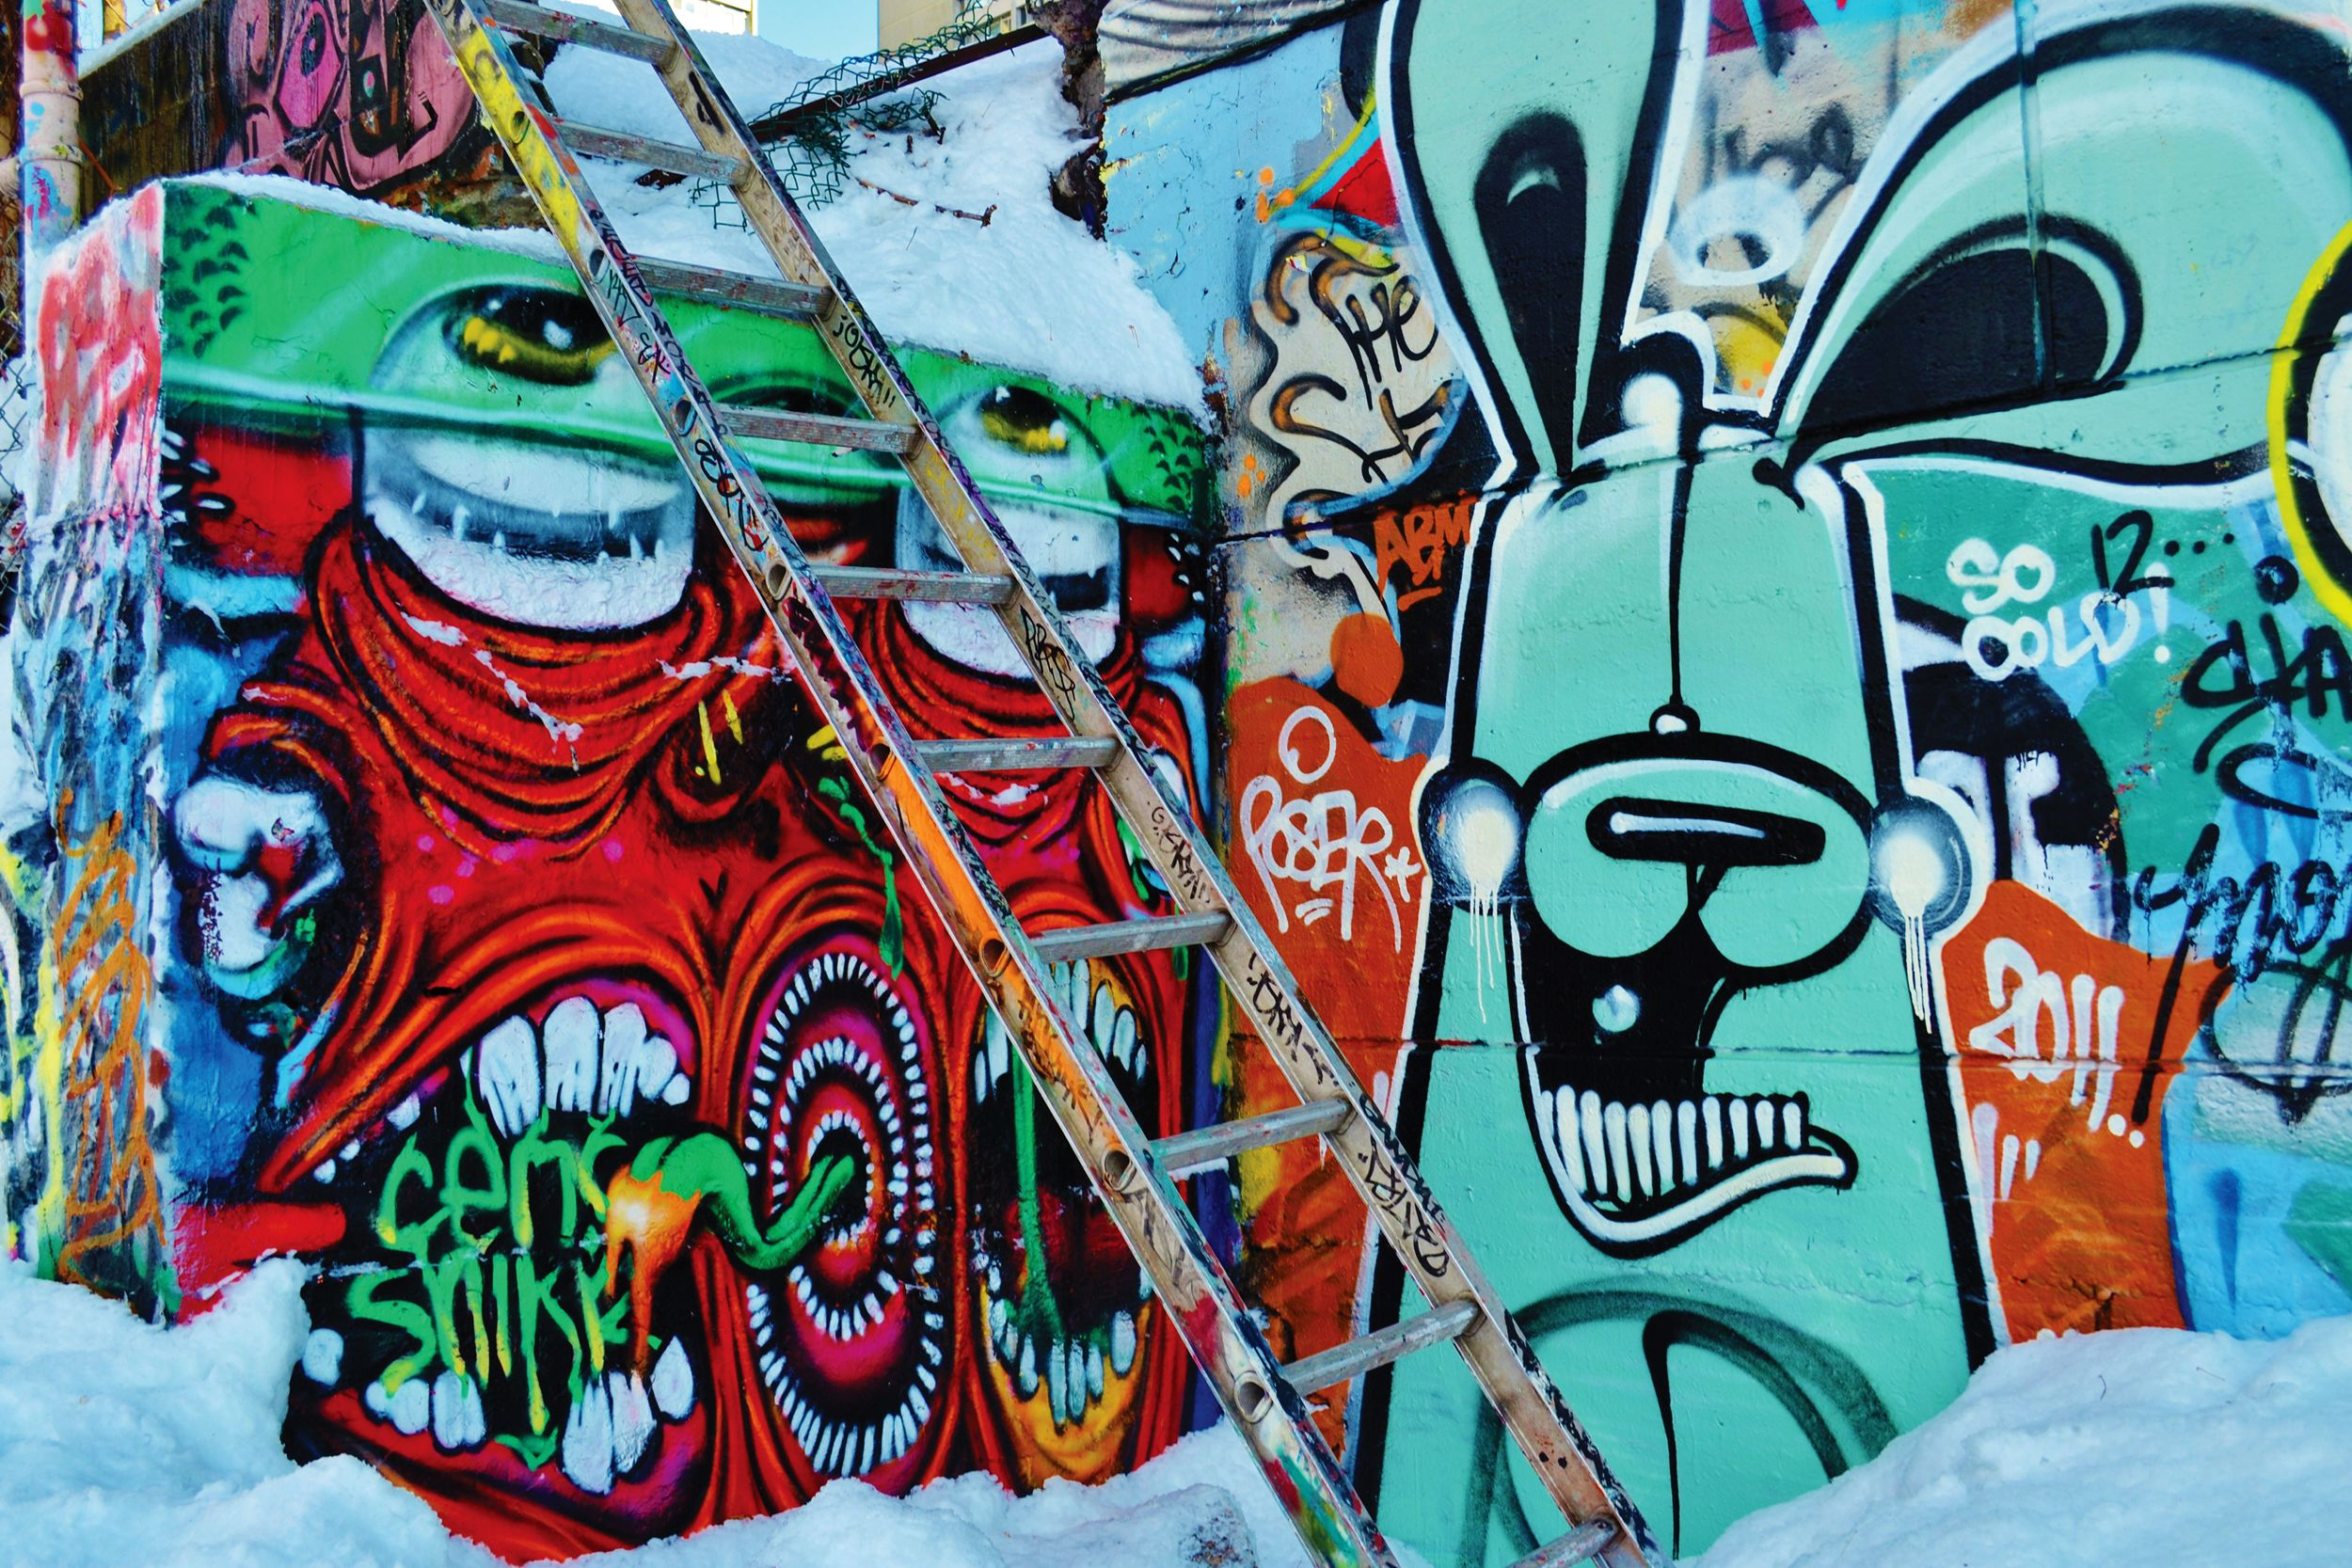 Graffiti art the fulcrum how did you get into graffiti art